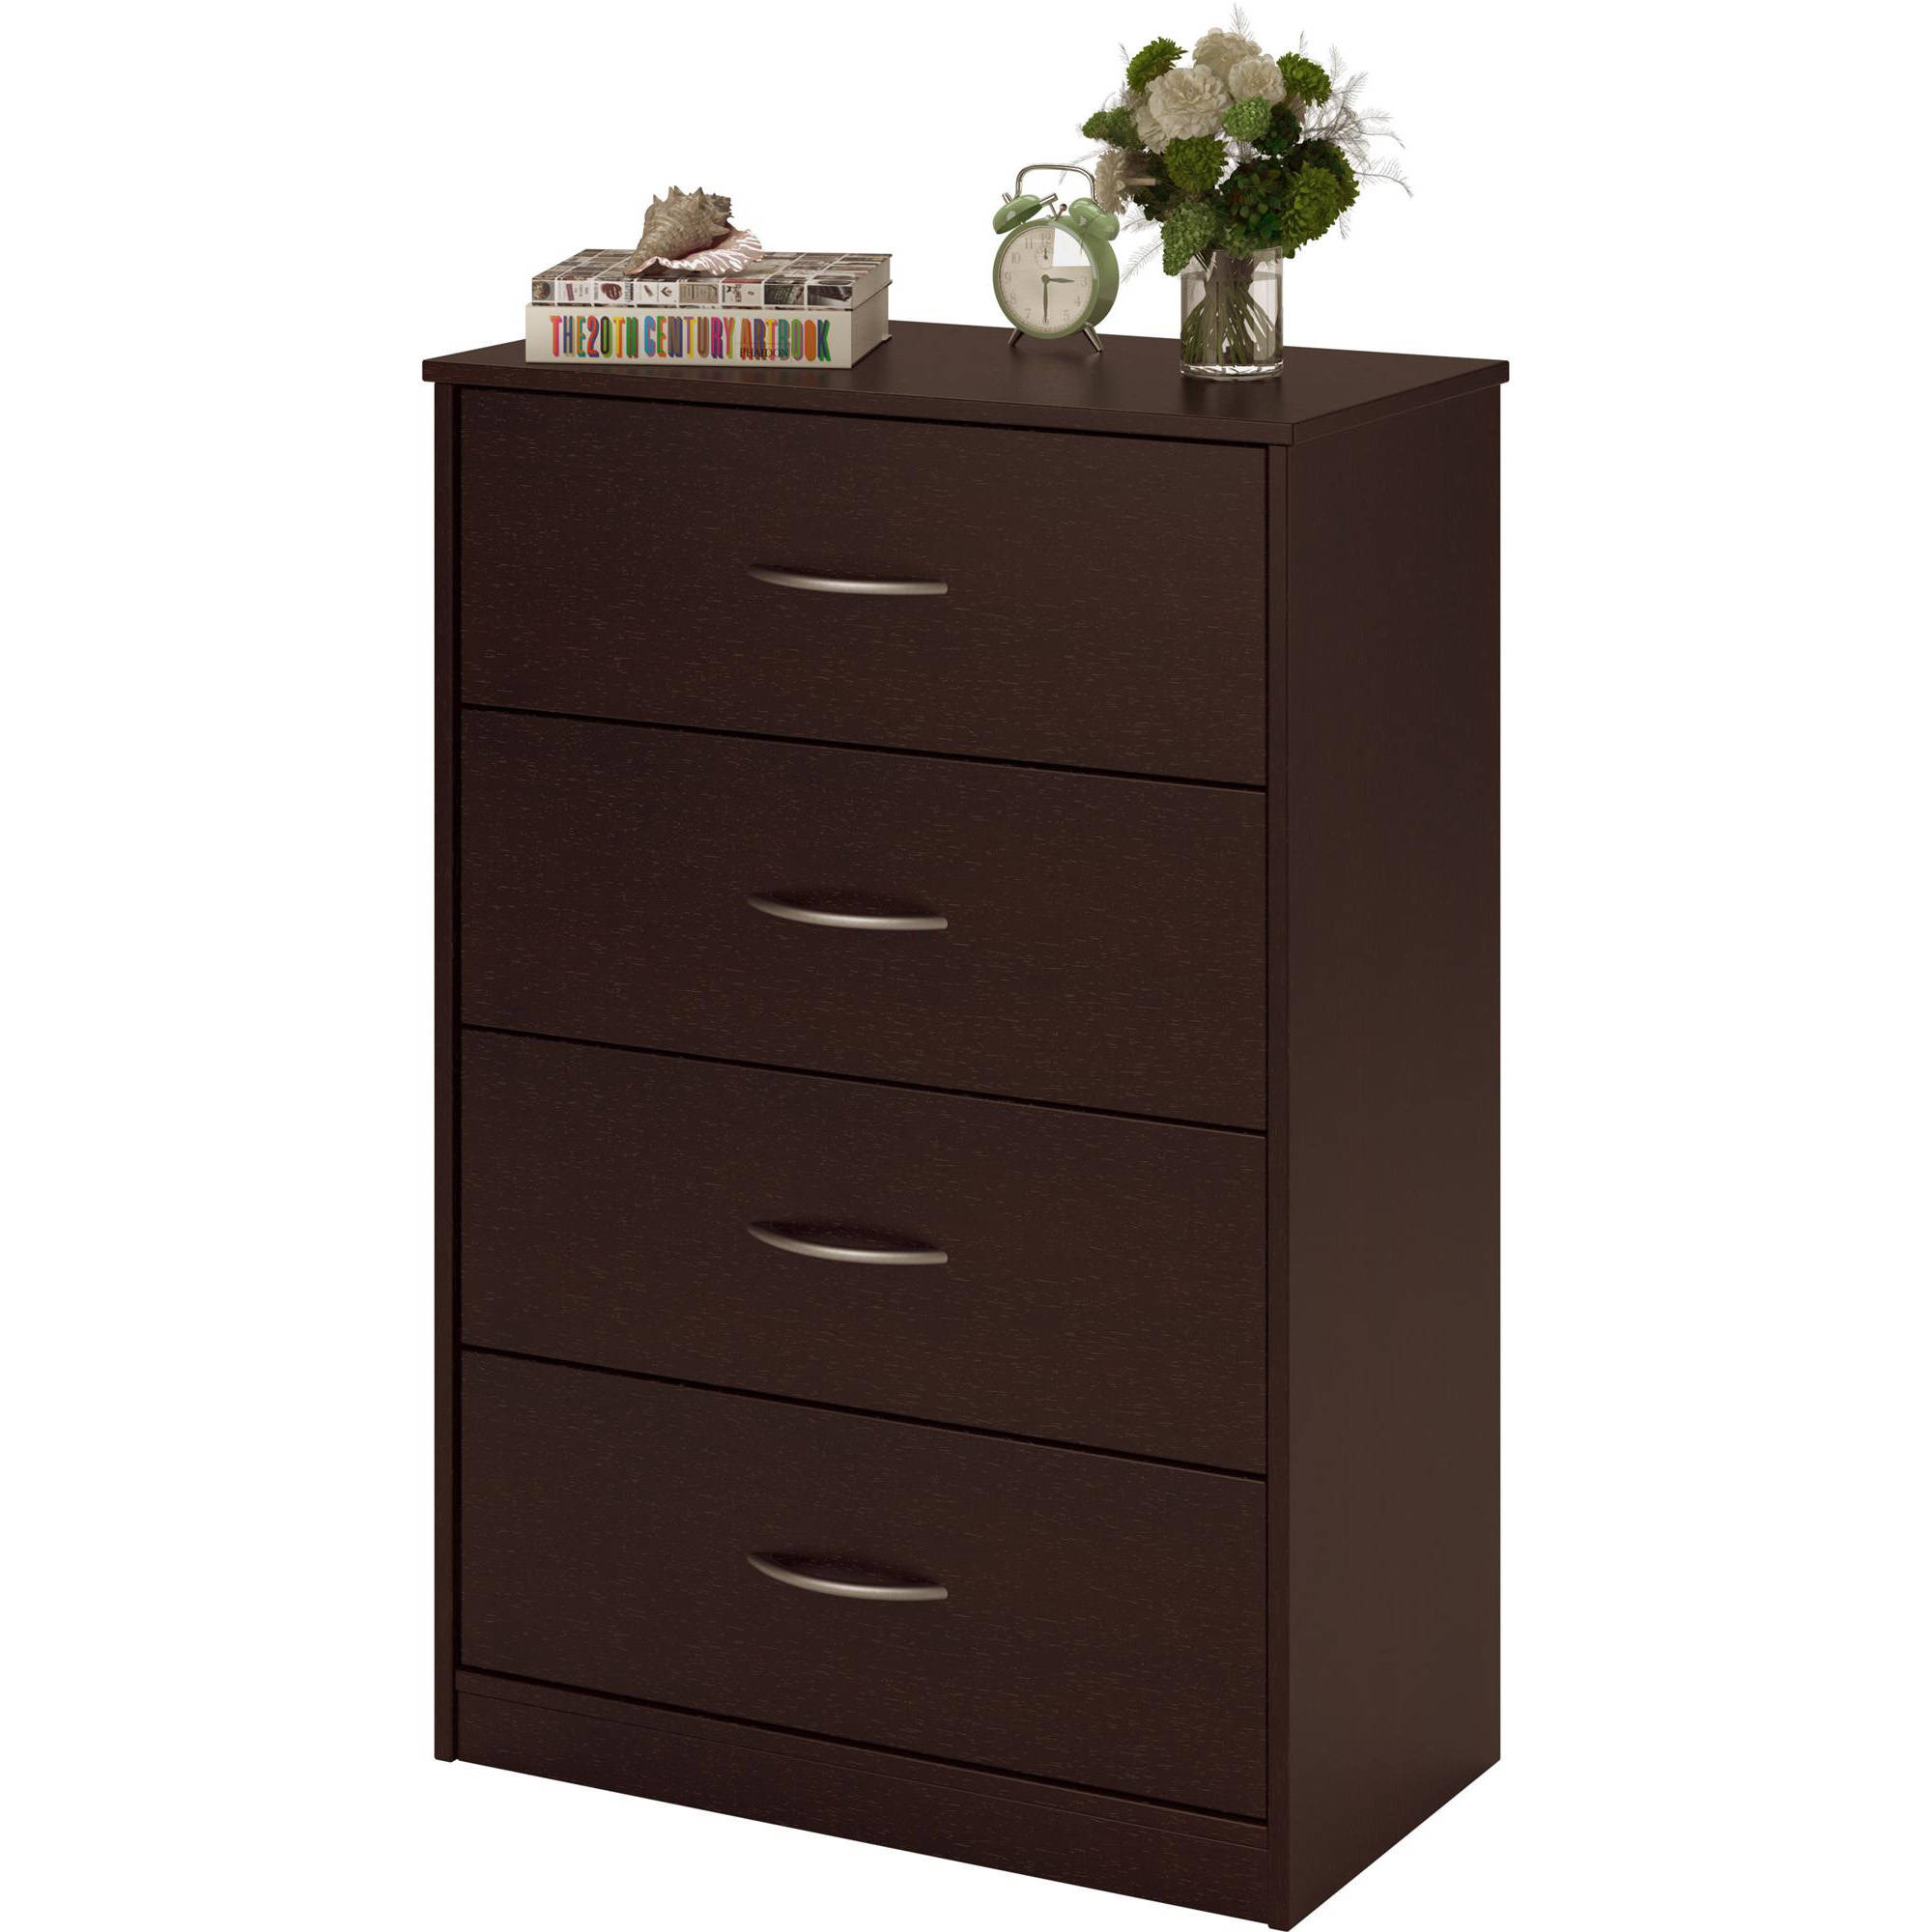 of drawers dresser drawer black mdp lynx bonsoni white chest